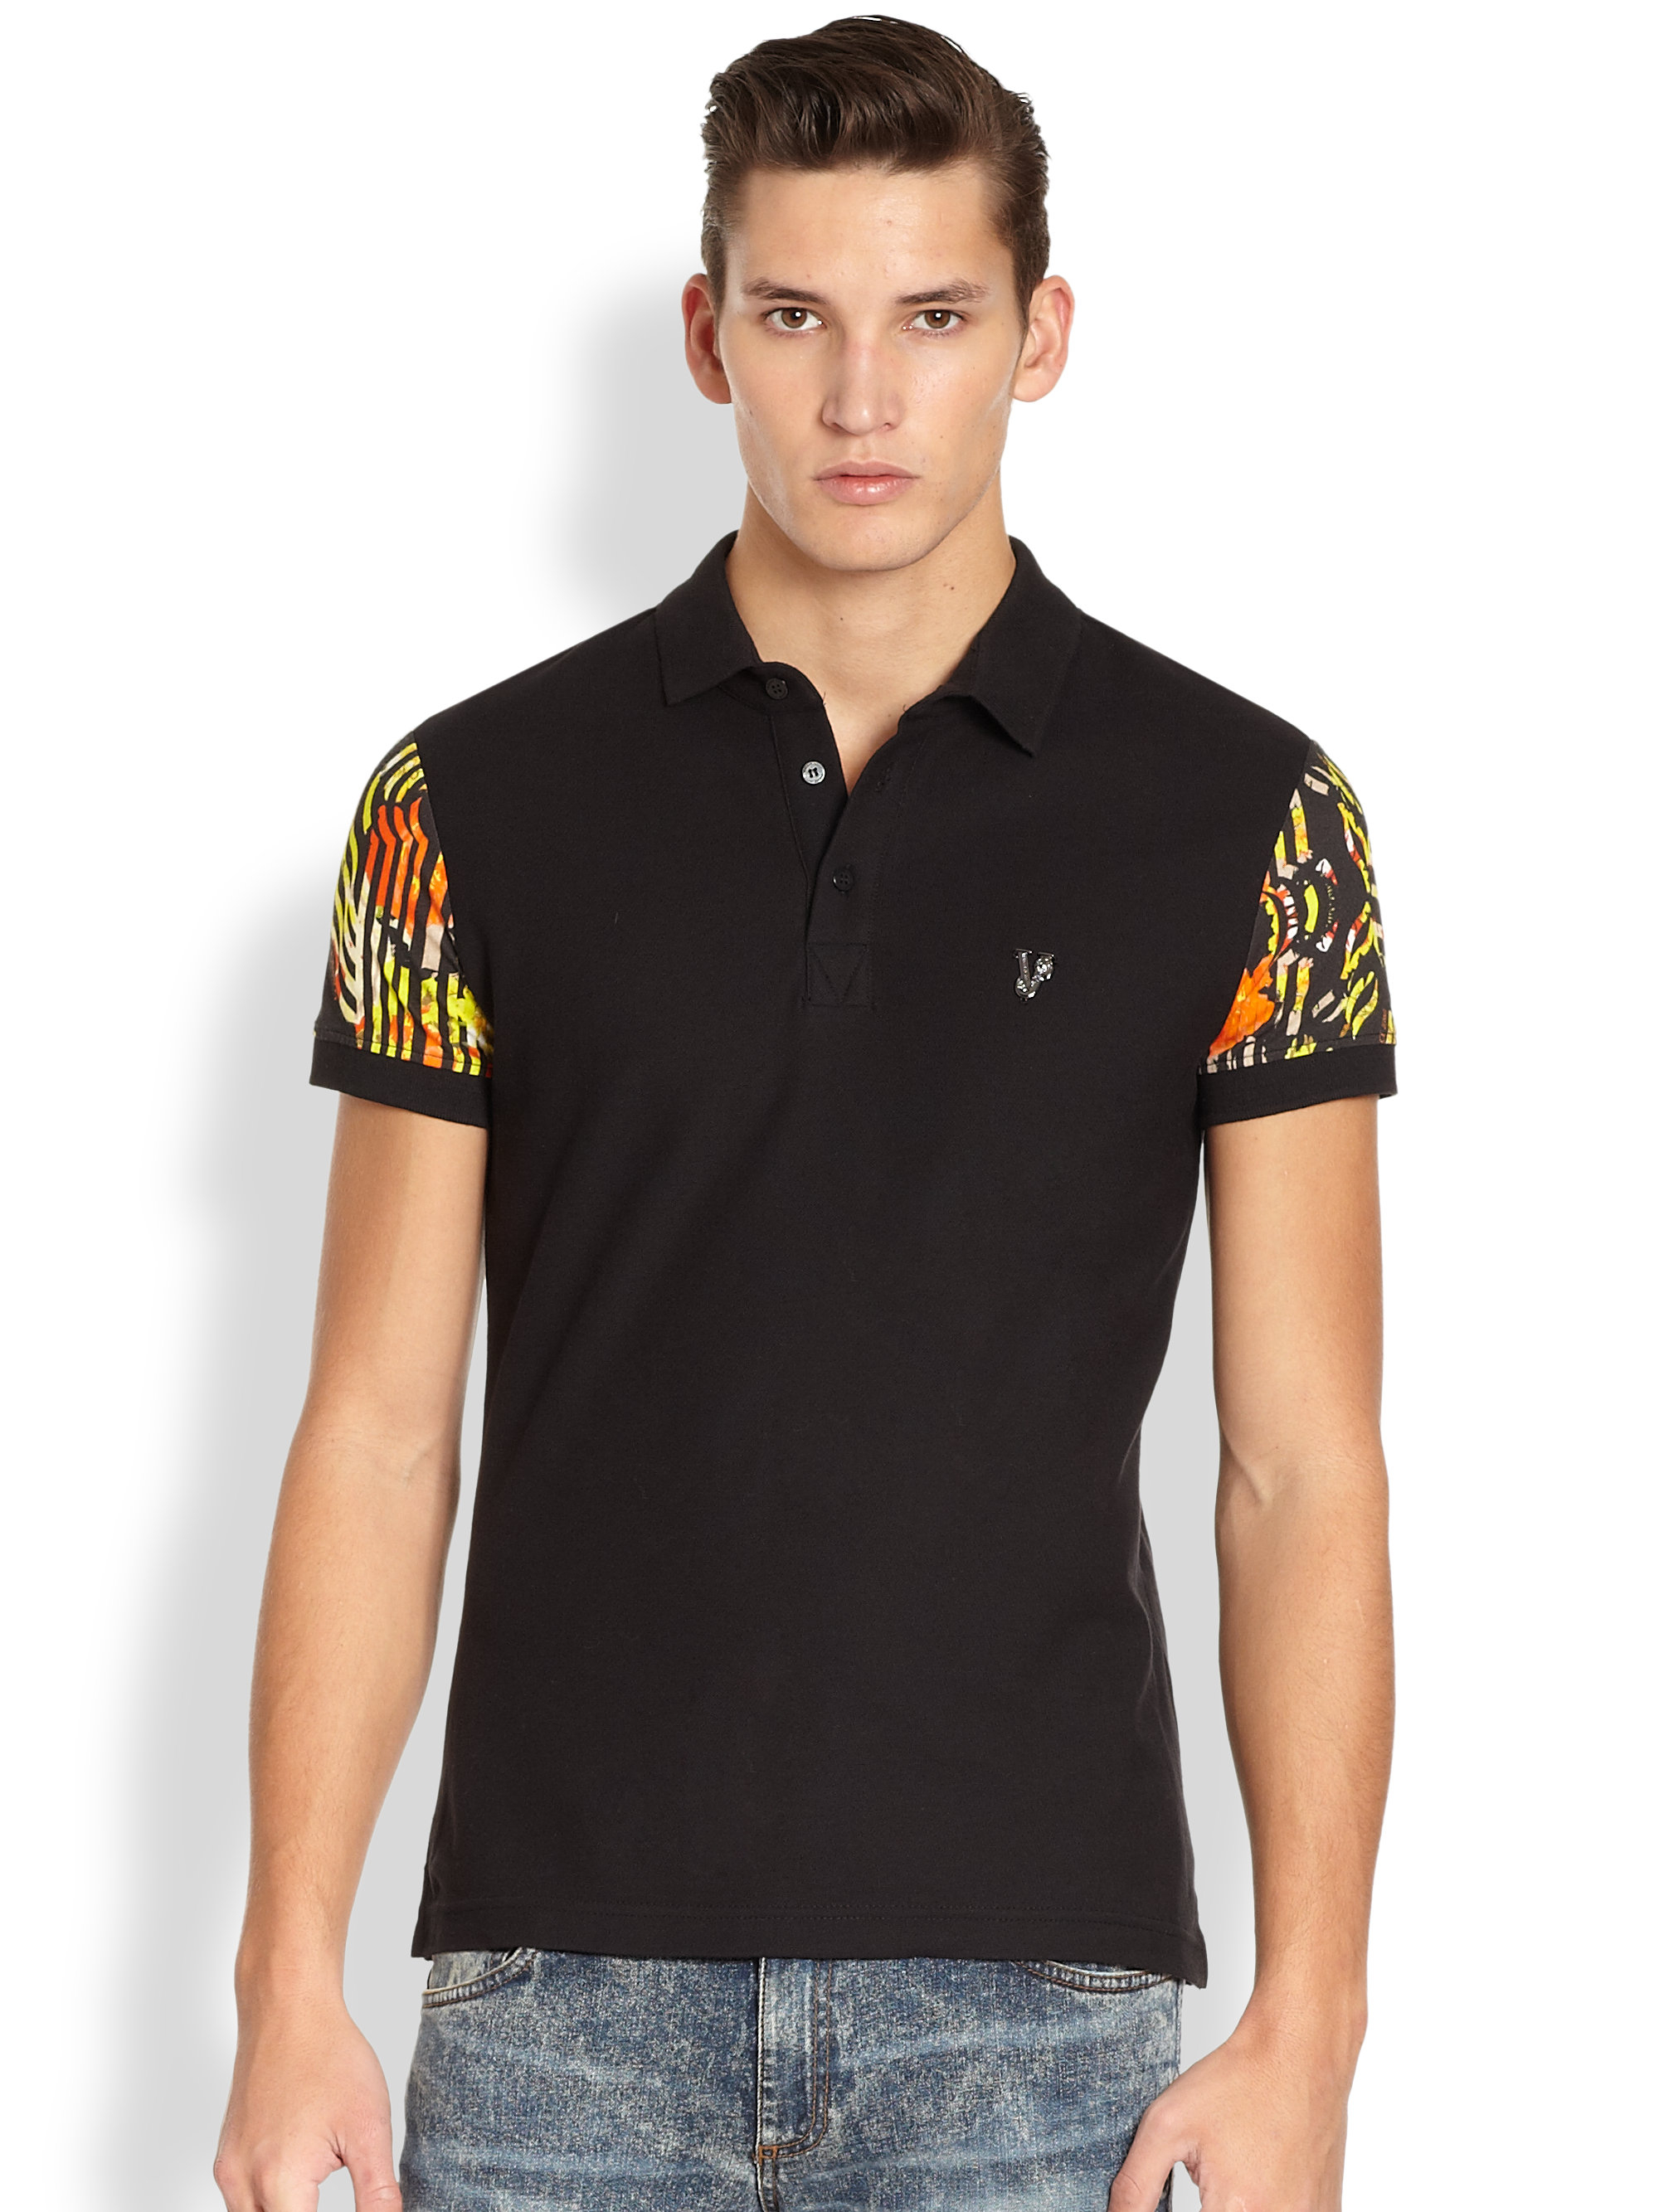 Versace jeans floral sleeve polo shirt in black for men lyst for Polo shirt and jeans